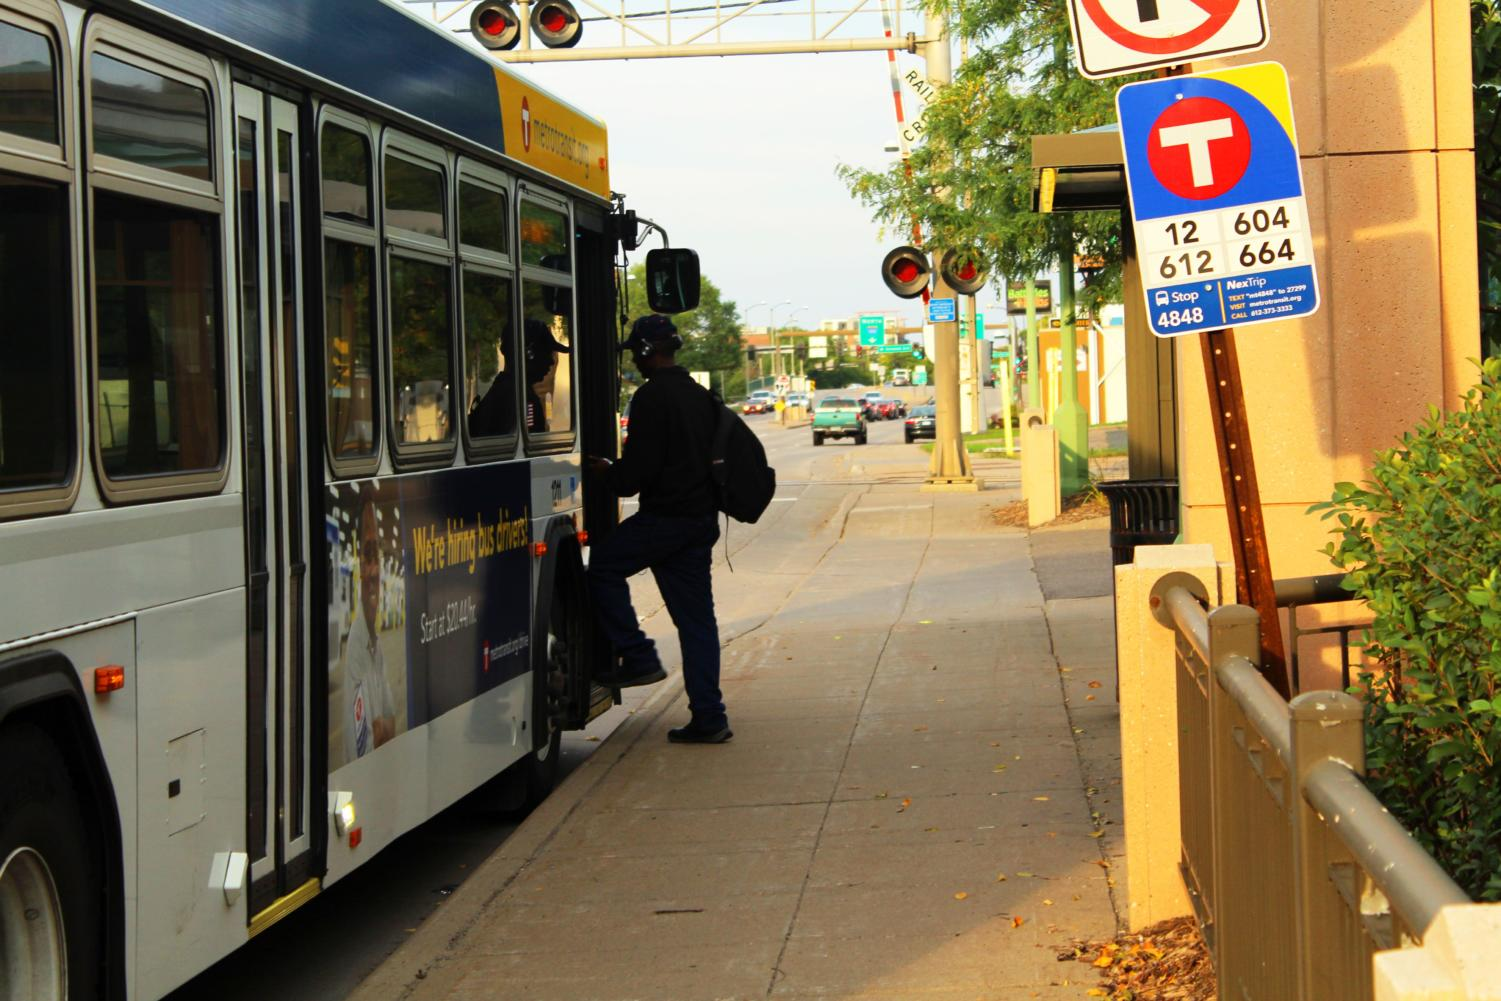 This commuter boards a public bus in Minneapolis.